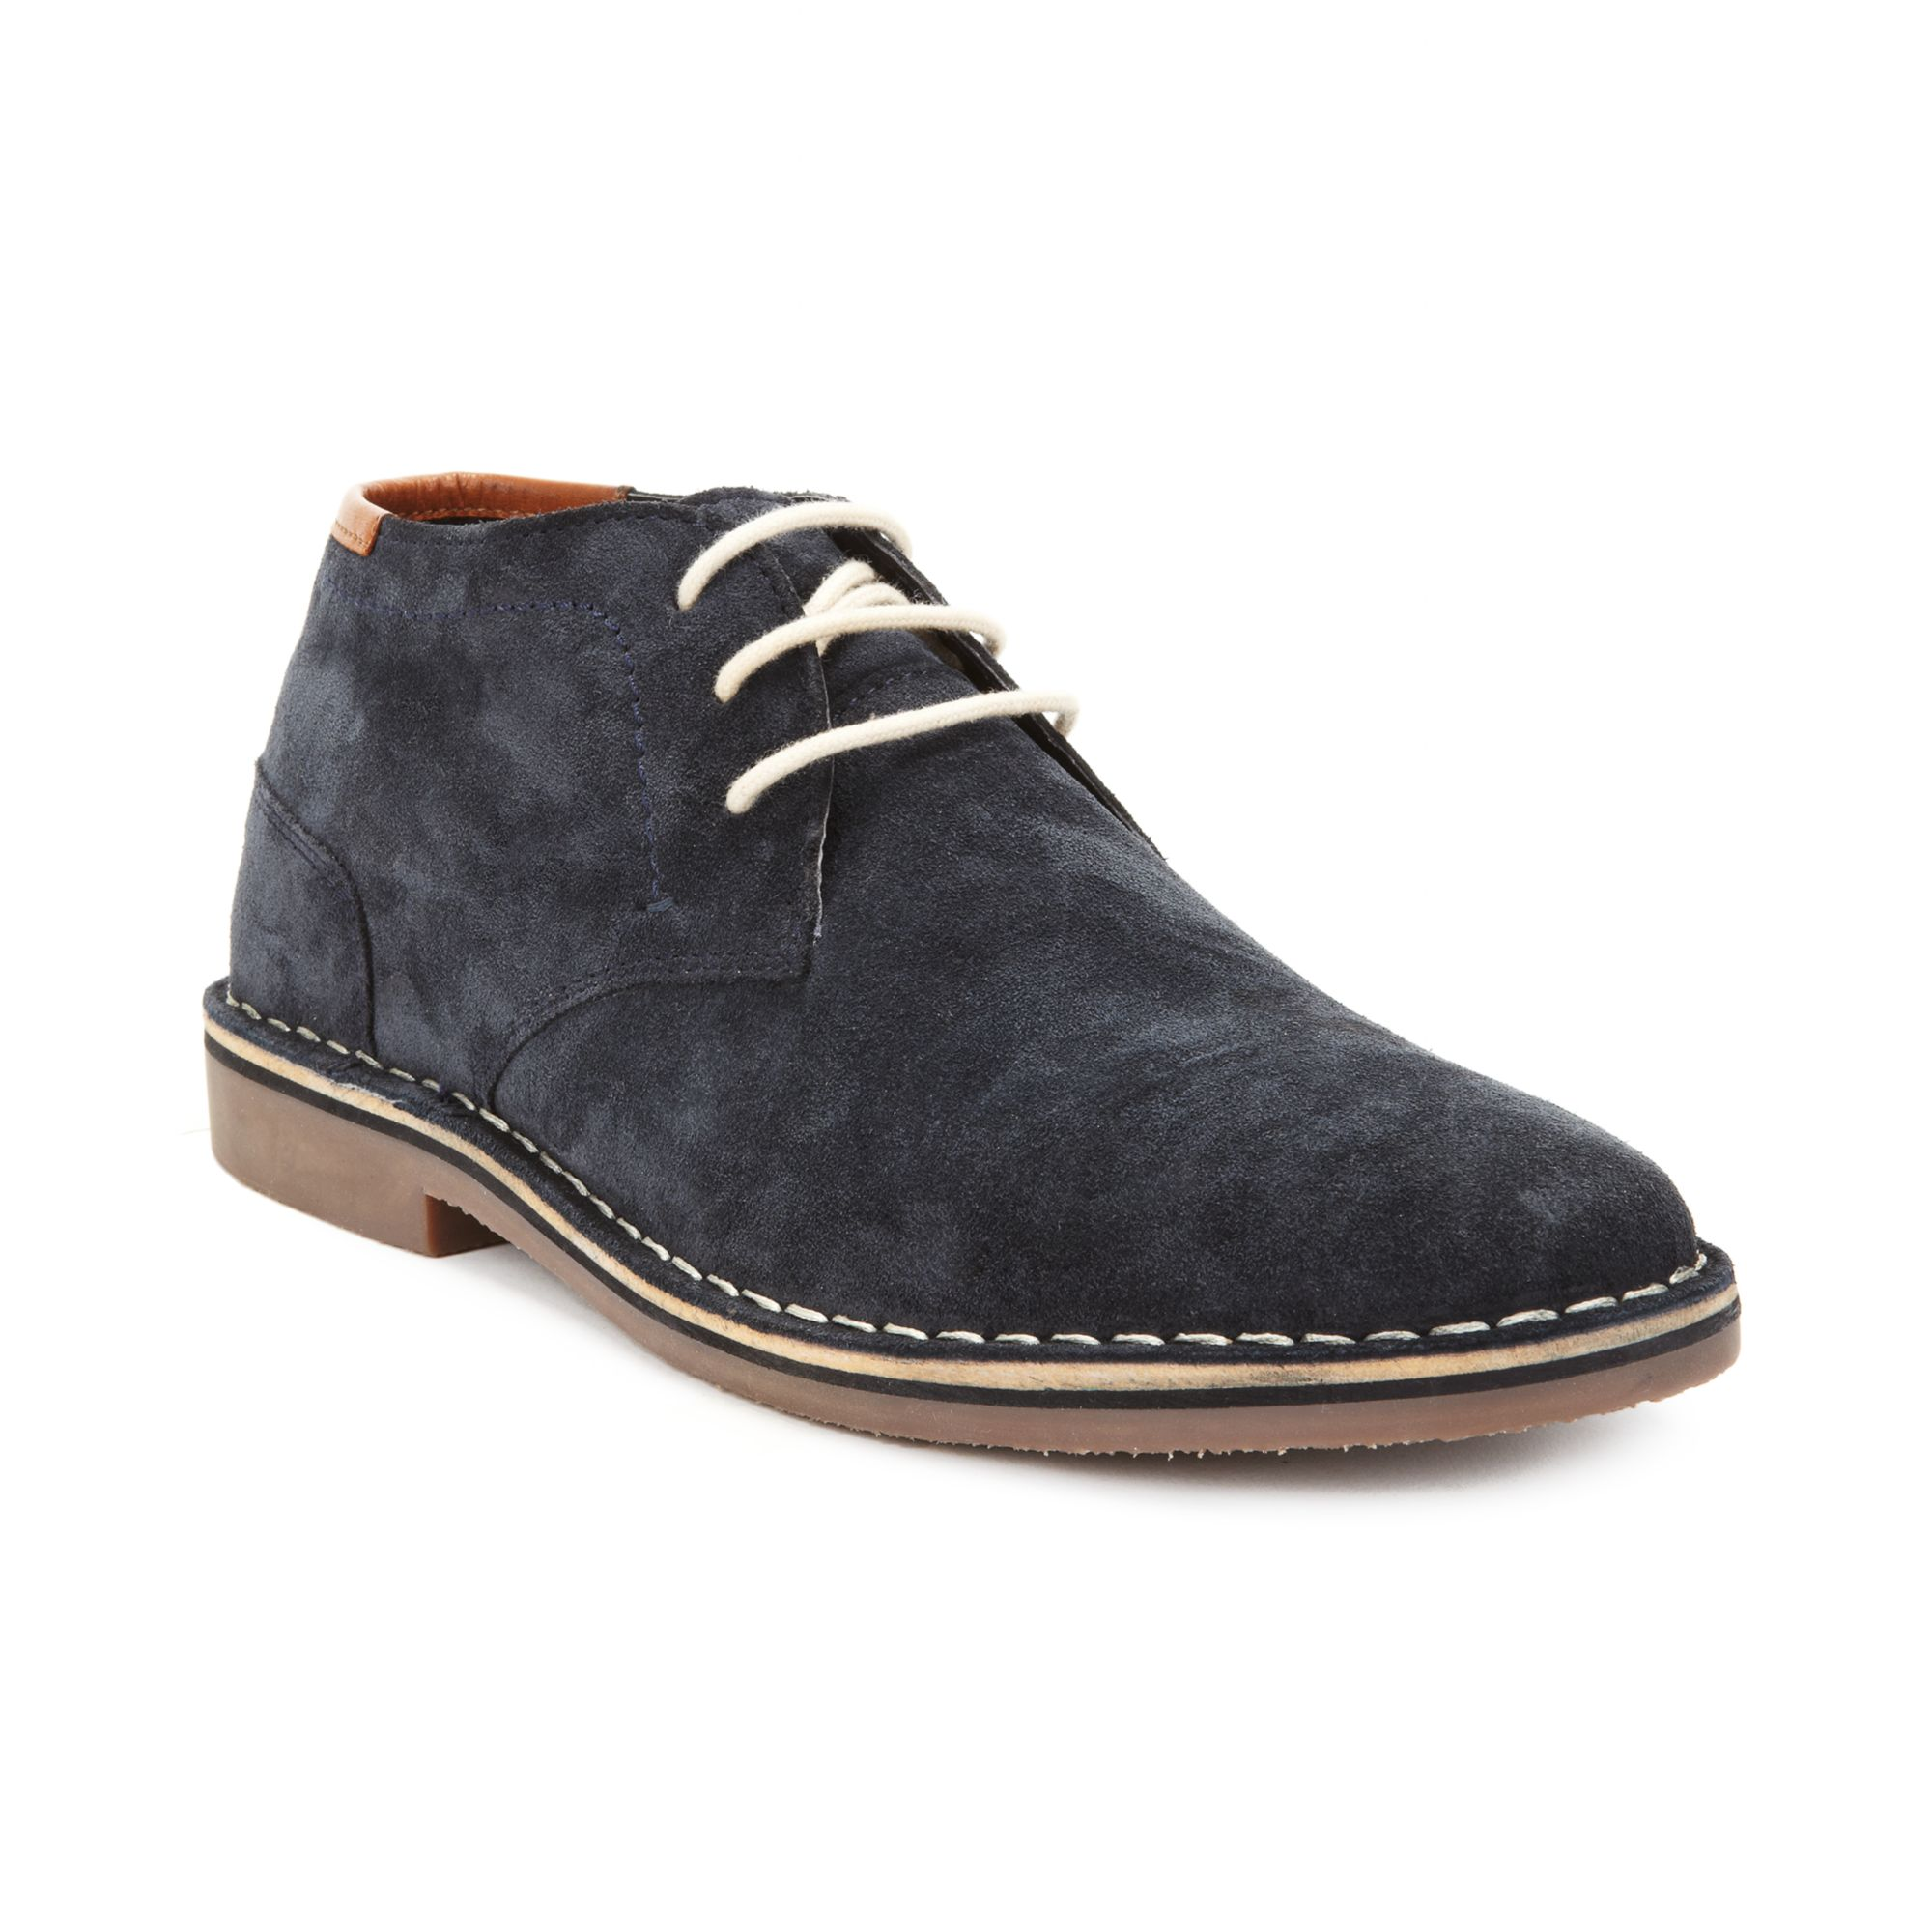 kenneth cole reaction realdeal suede chukka laceup boots